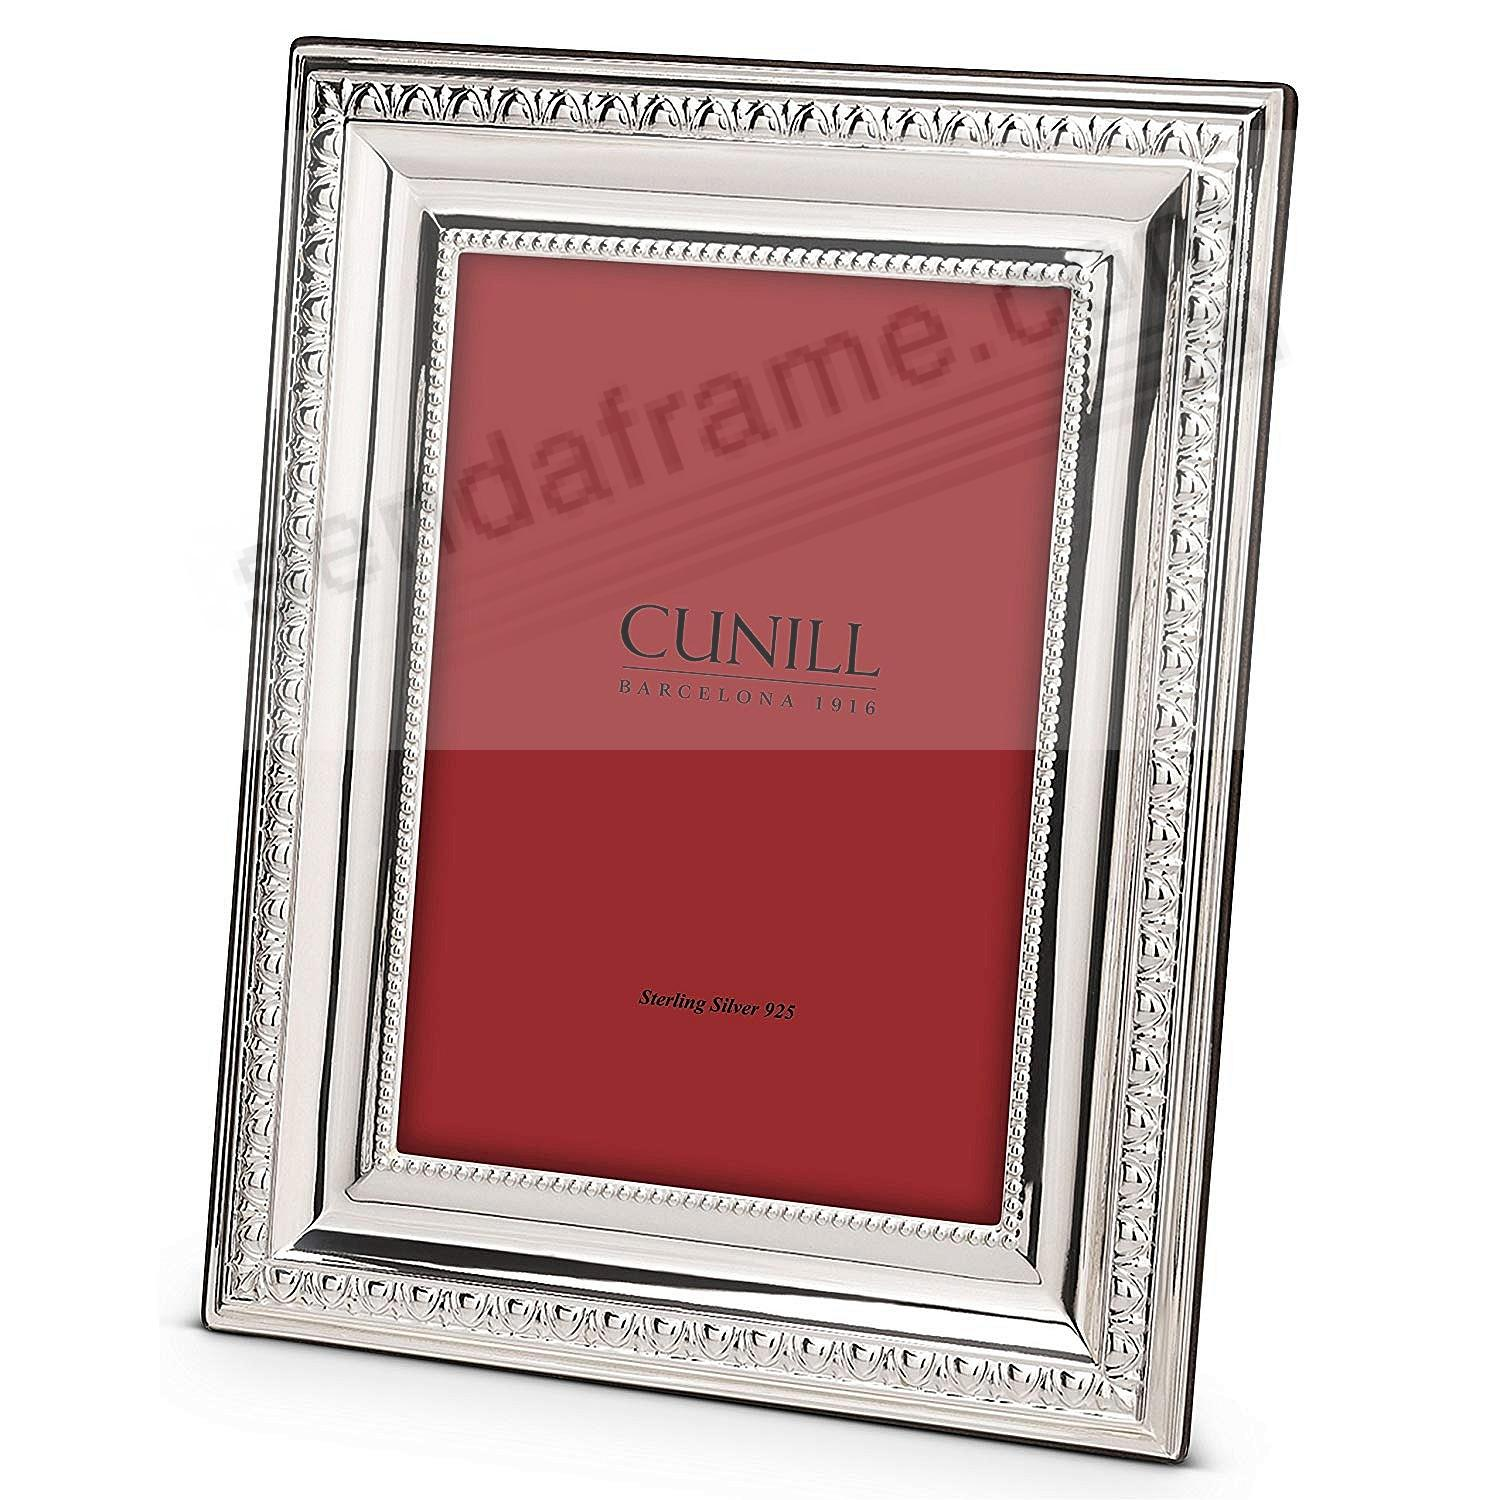 Bordering on Perfect:<br>the PRESTIGE fine sterling silver 8x10/7x9 by Cunill®